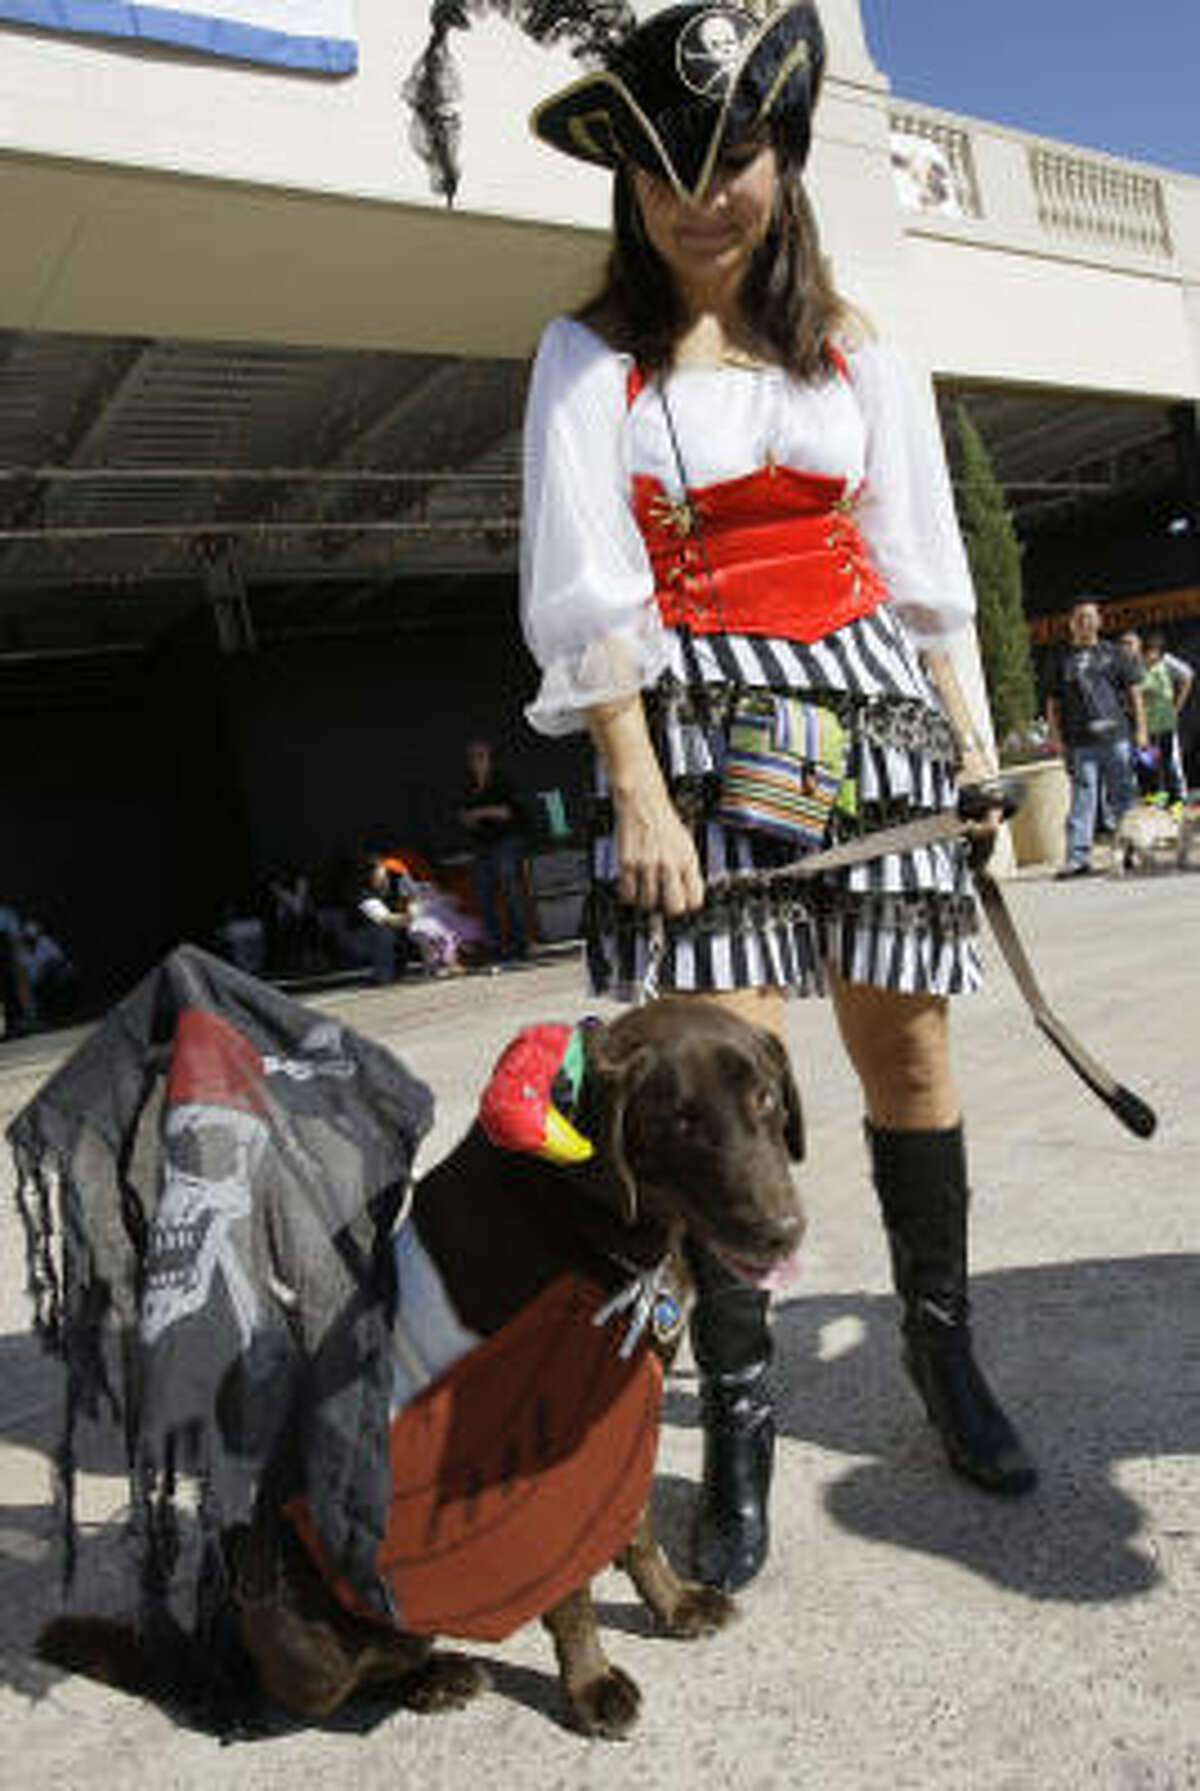 Pirate Patty Gomez and Angel, a chocolate lab dressed as a pirate ship, won first place at Citizens for Animal Protection's Howl-o-ween dog costume contest.